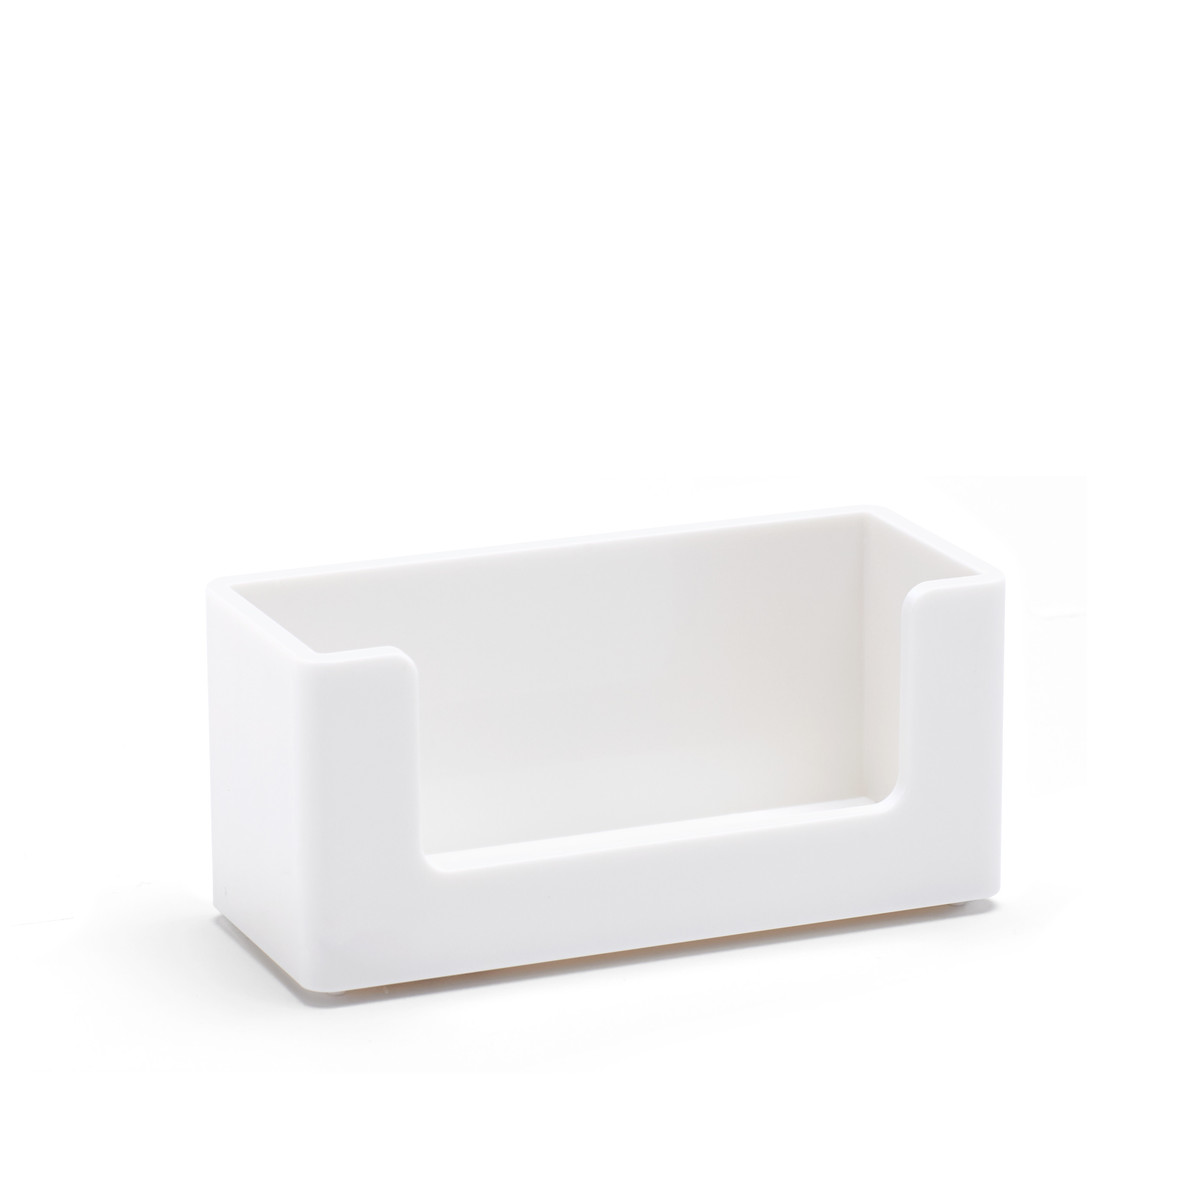 White business card holder desk accessories organization poppin images white business card holder magicingreecefo Image collections